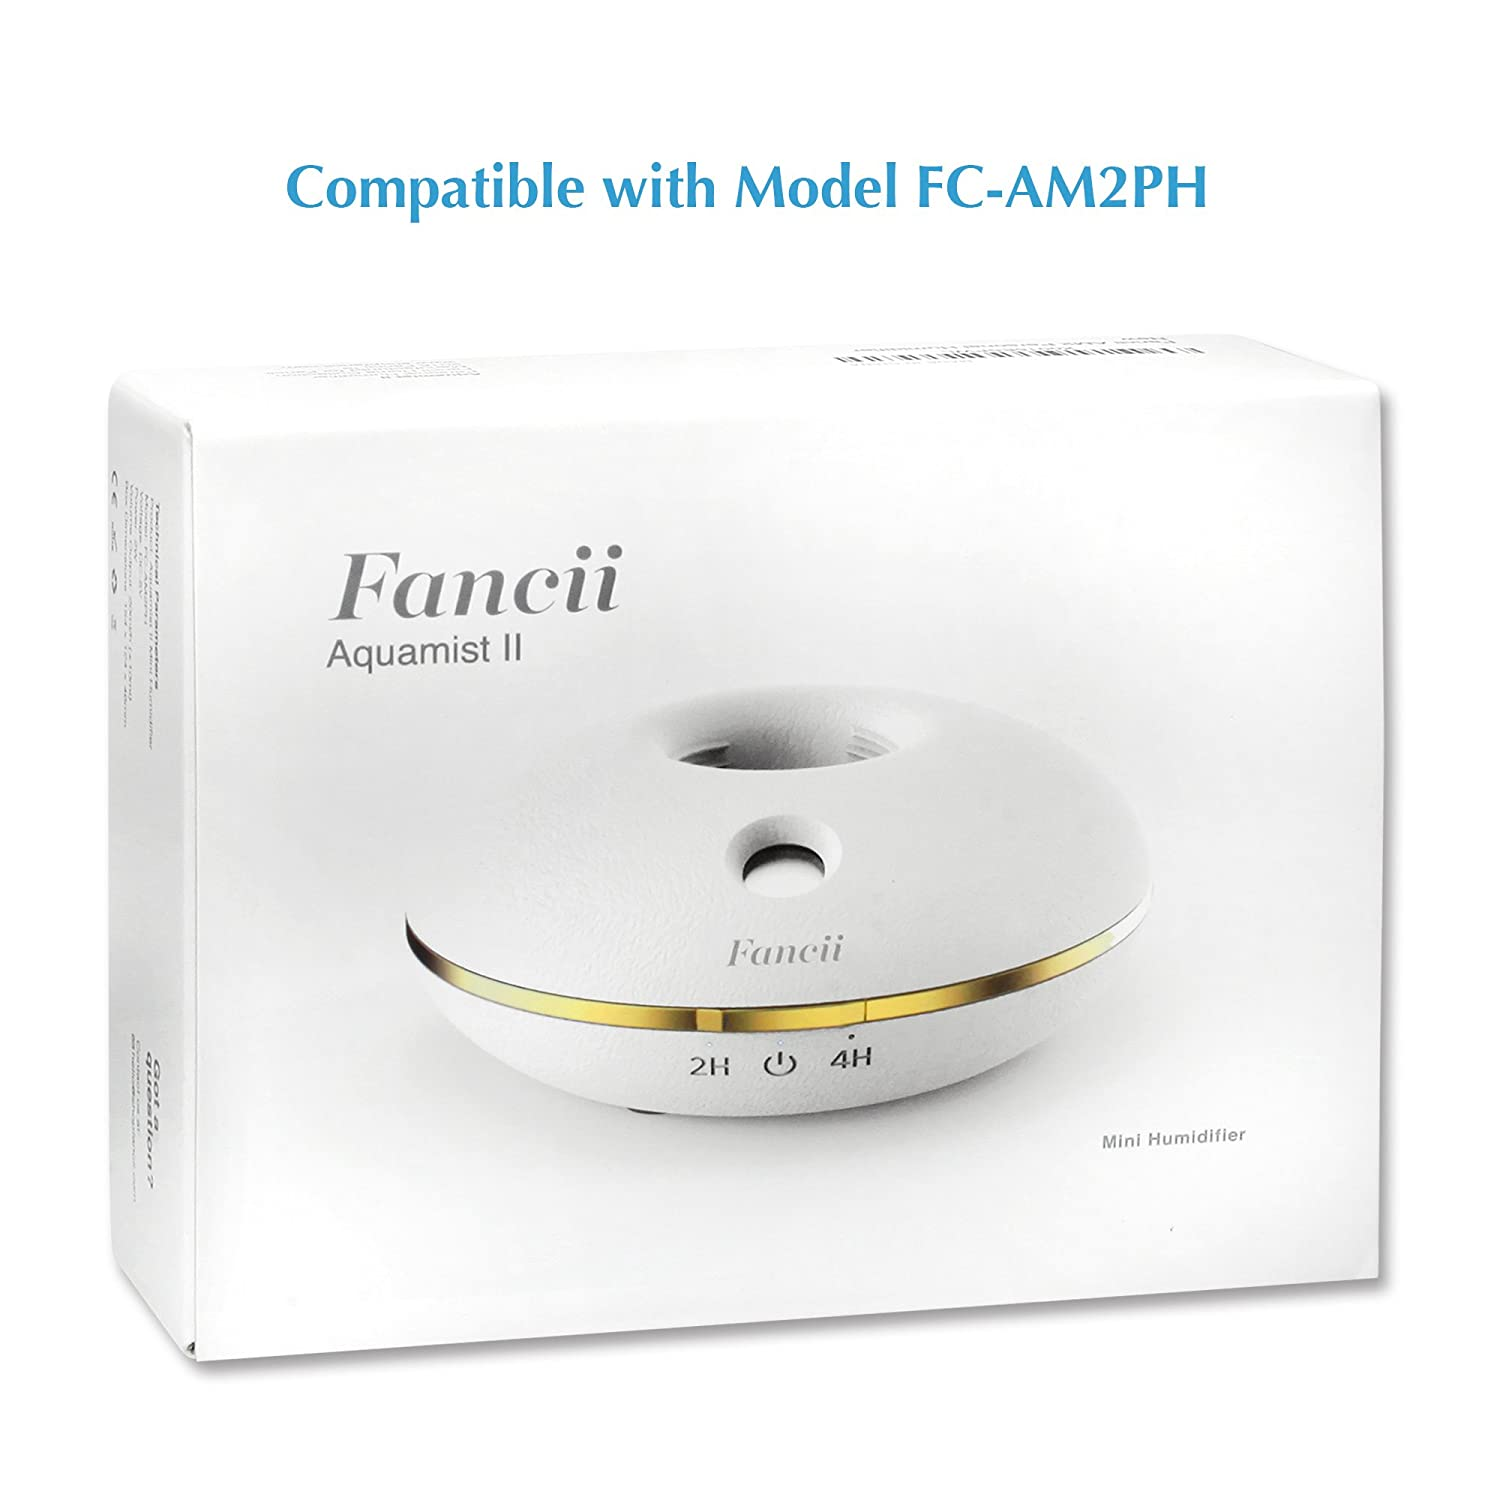 Amazon.com: Fancii Mini Personal Humidifier Replacement Filters (Pack of 5) for Model FC-AM2PH: Home & Kitchen